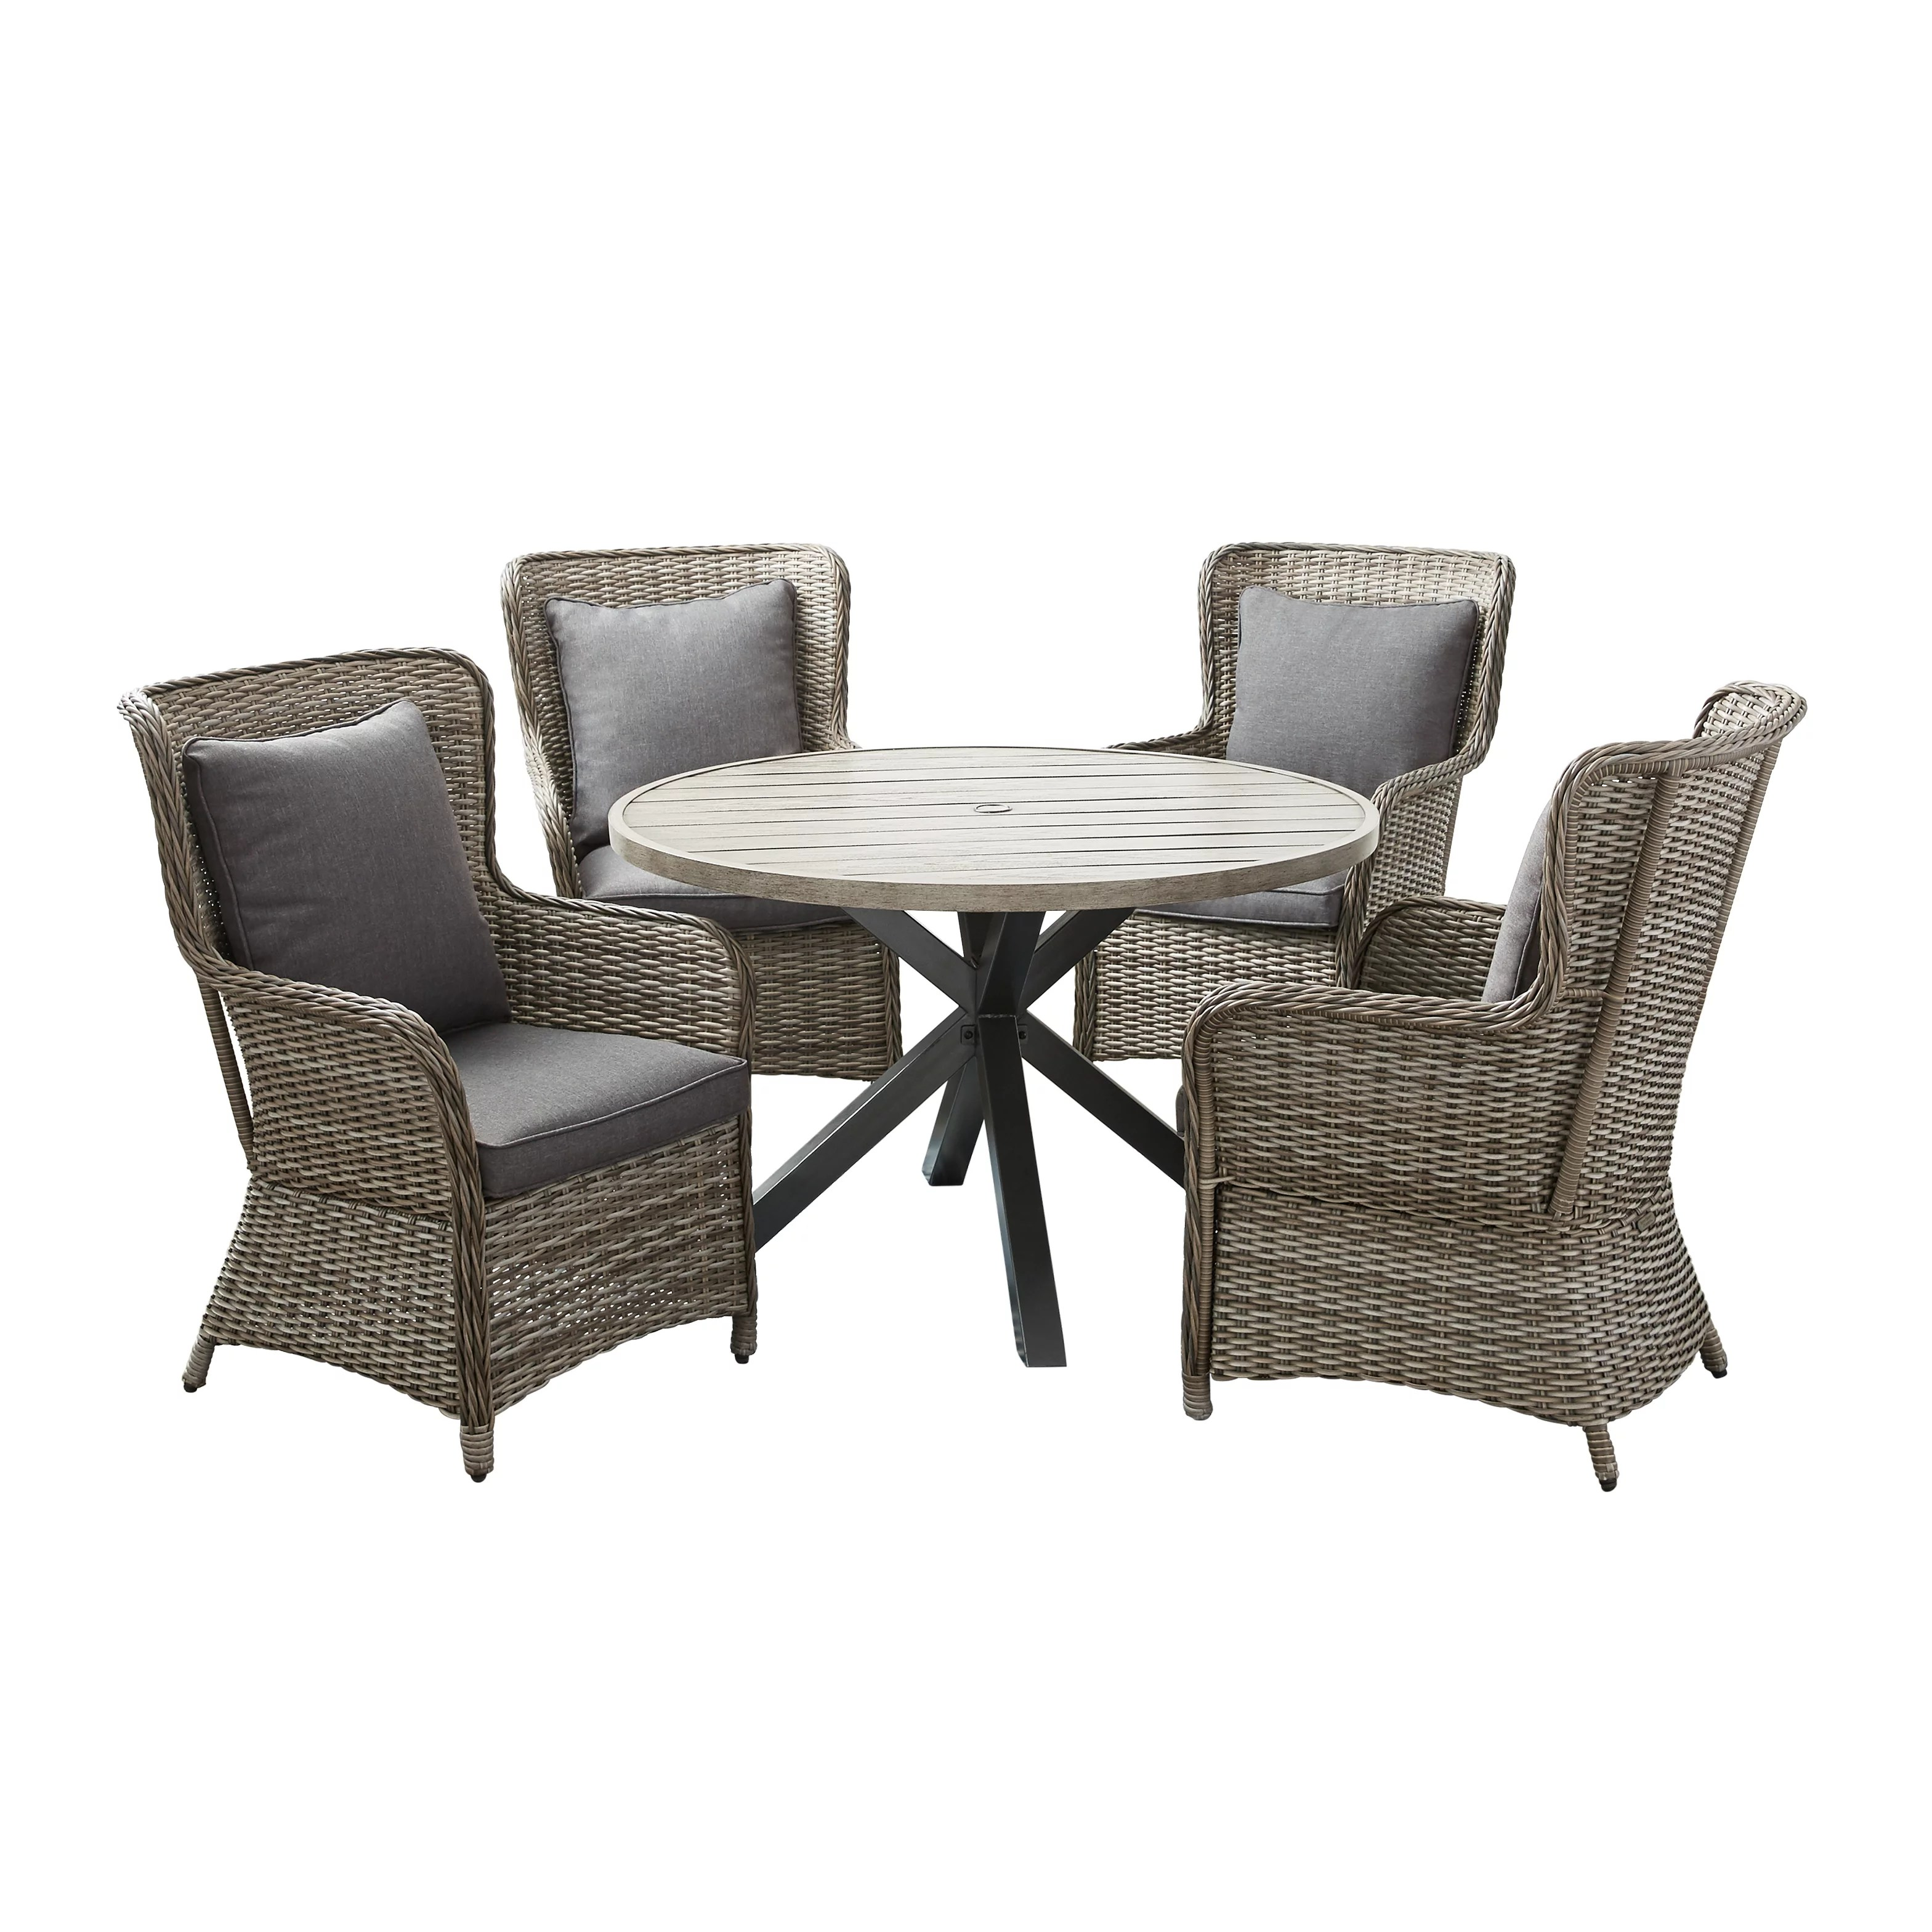 better homes and gardens victoria outdoor dining patio set cushioned wicker 5 piece walmart com